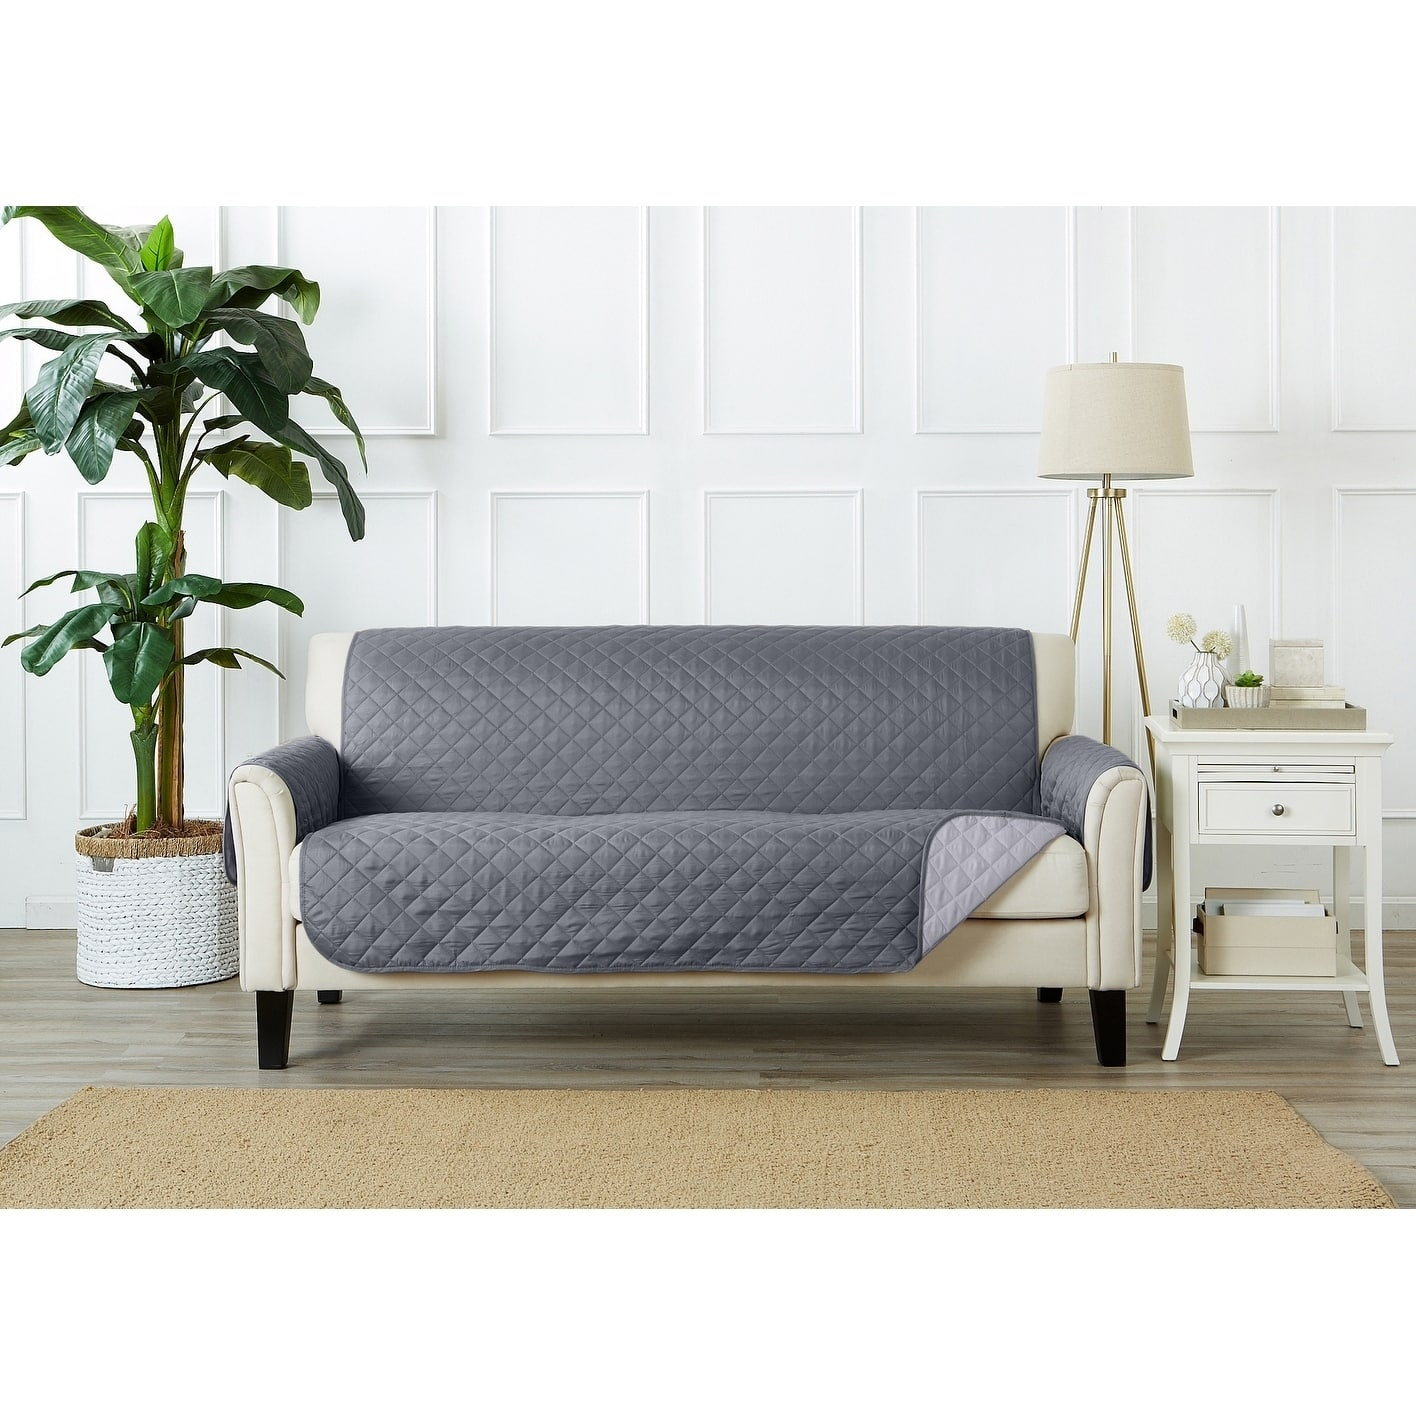 Buy Sofa Amp Couch Slipcovers Online At Overstock Our Best